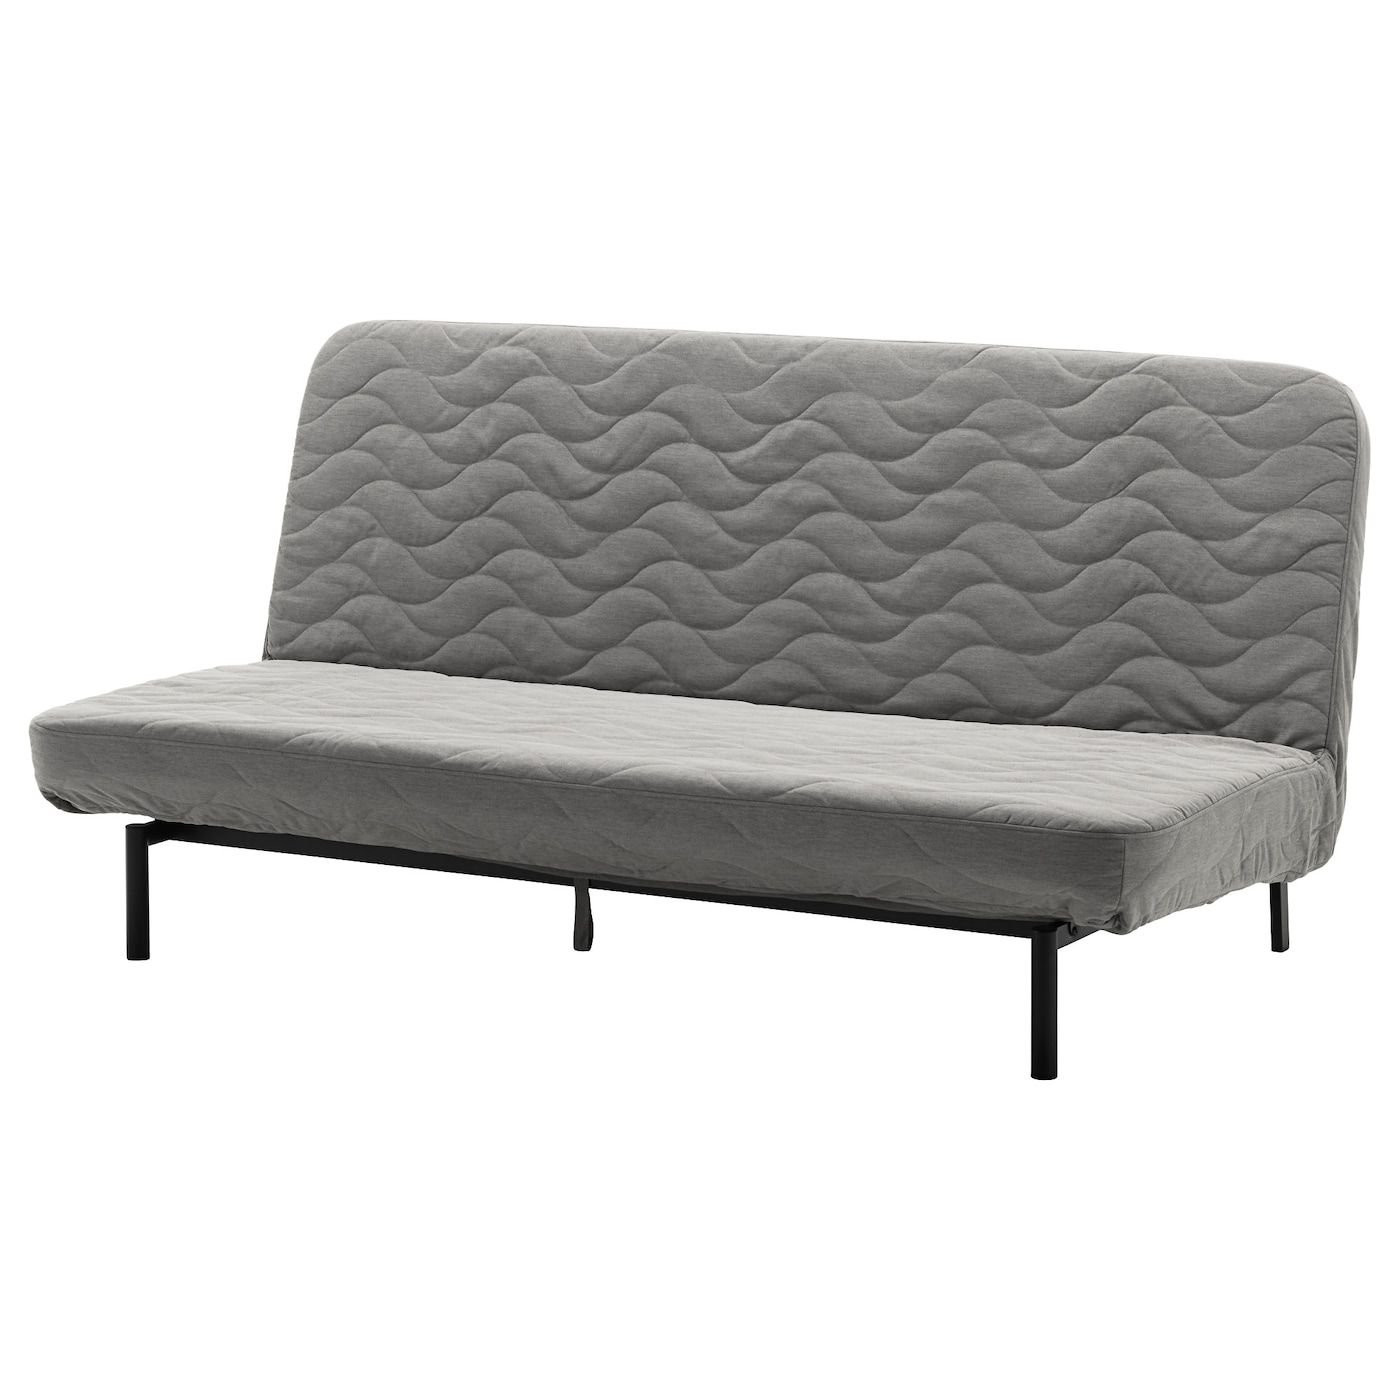 Nyhamn 3 seat sofa bed with pocket spring mattress knisa for Sofa bed ikea malaysia